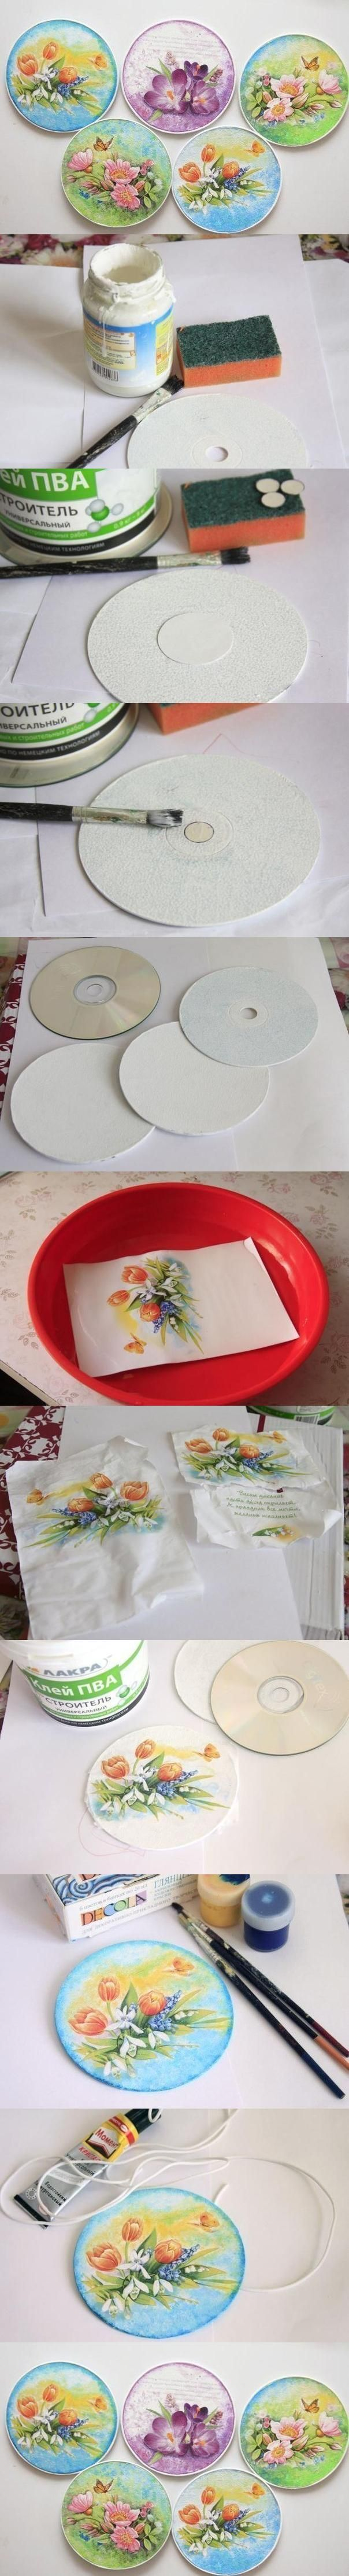 DIY Nice Old CD Paintings DIY Projects